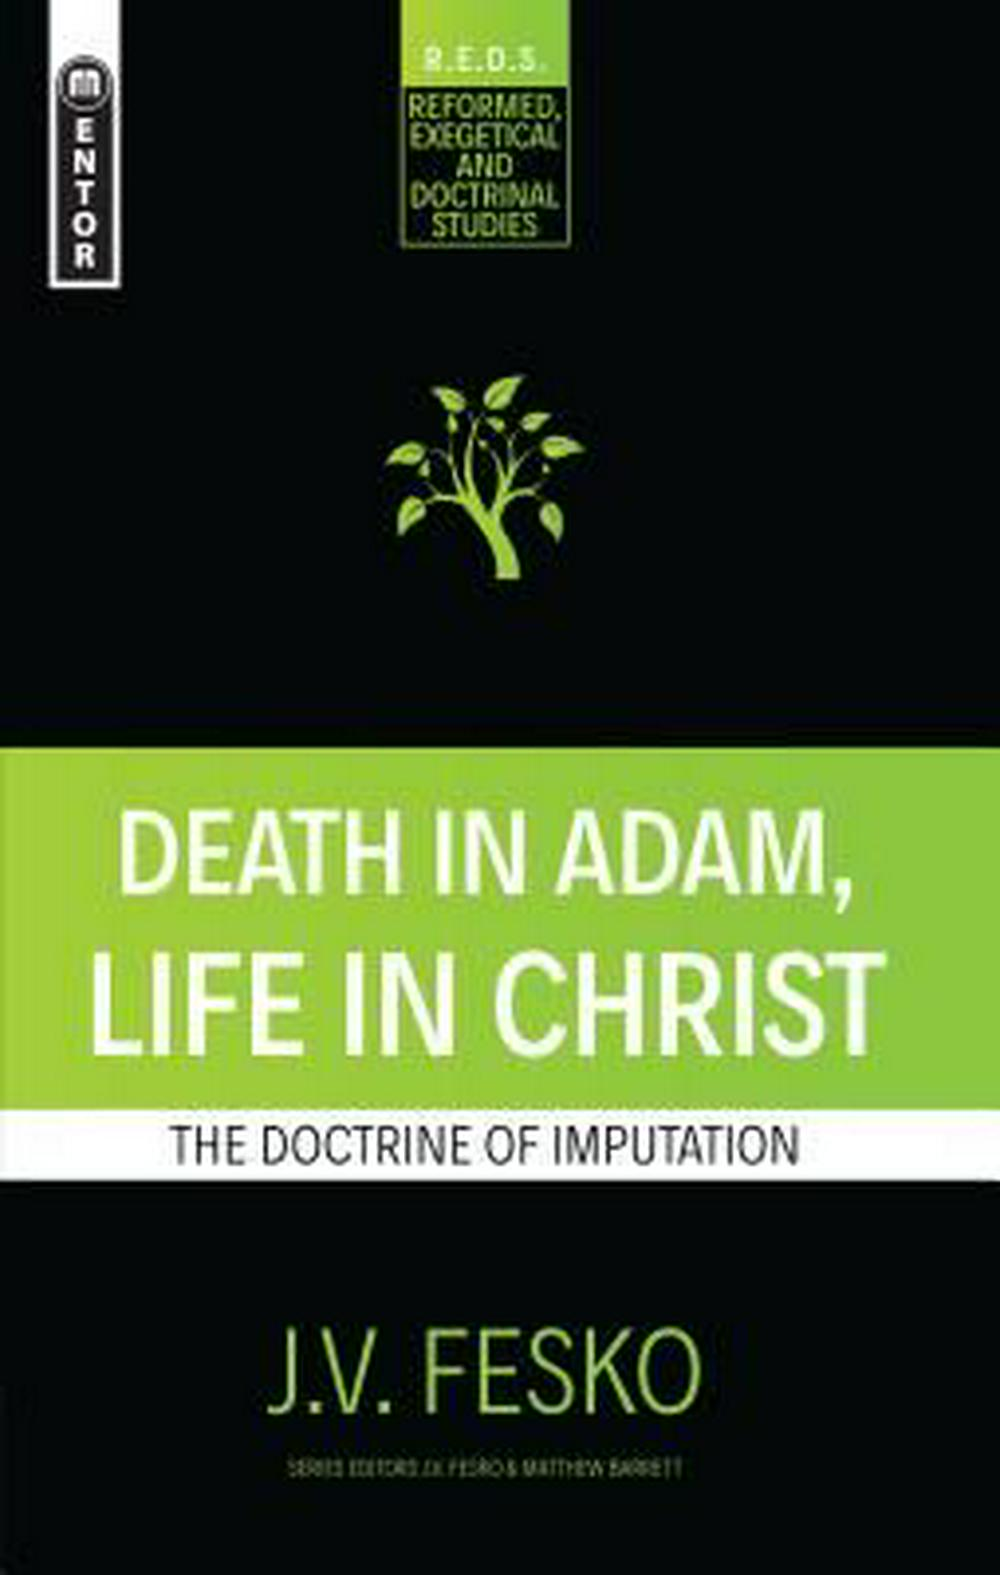 Death in Adam, Life in Christ: The Doctrine of Imputation (Reformed Exegetical Doctrinal Studies series)